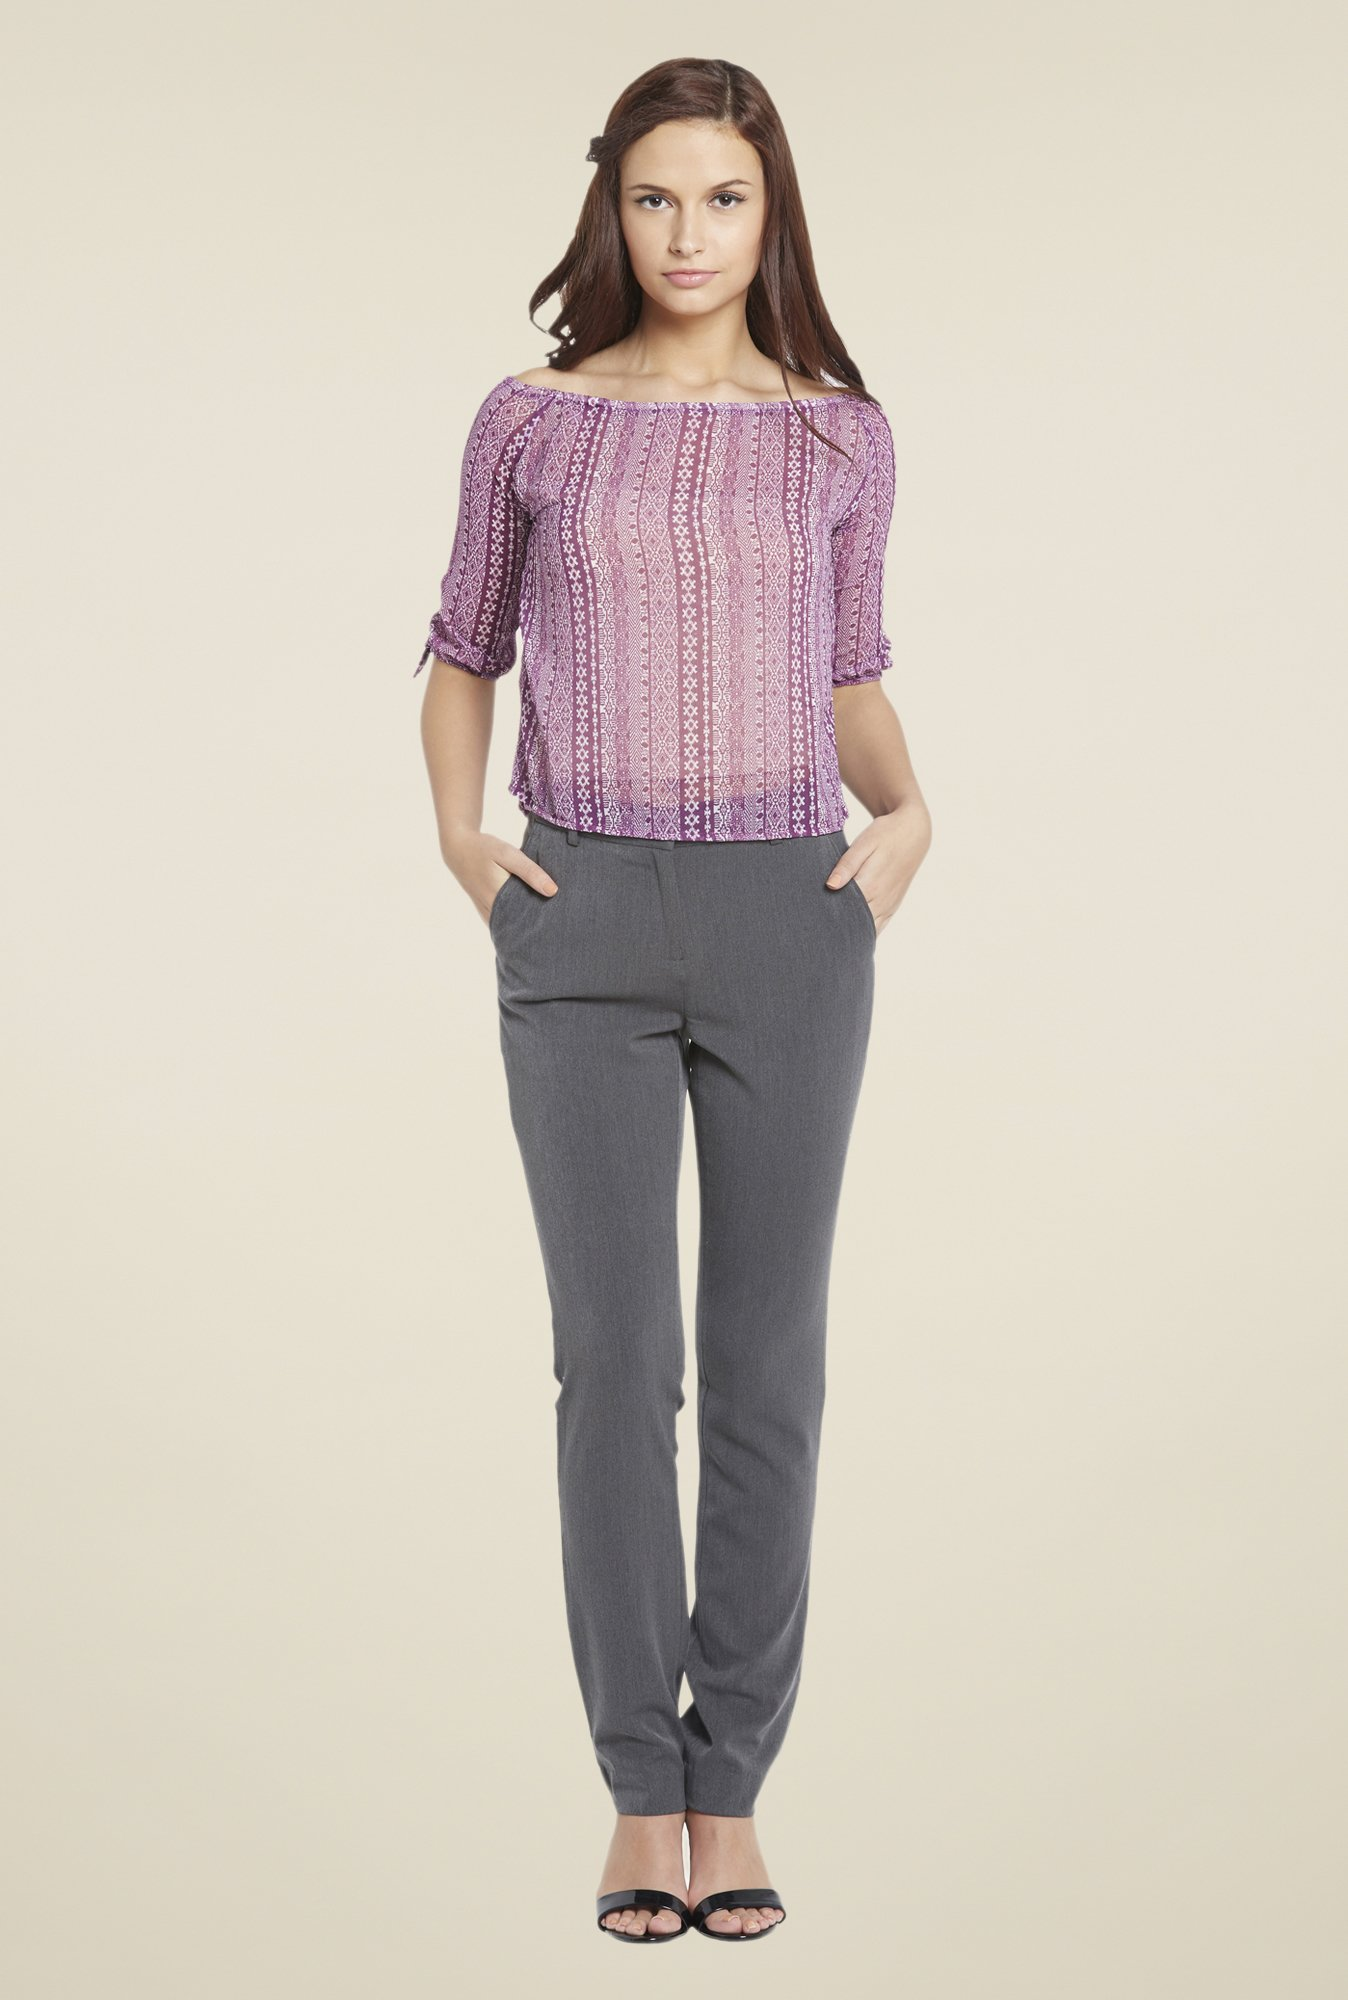 Globus Purple Printed Top